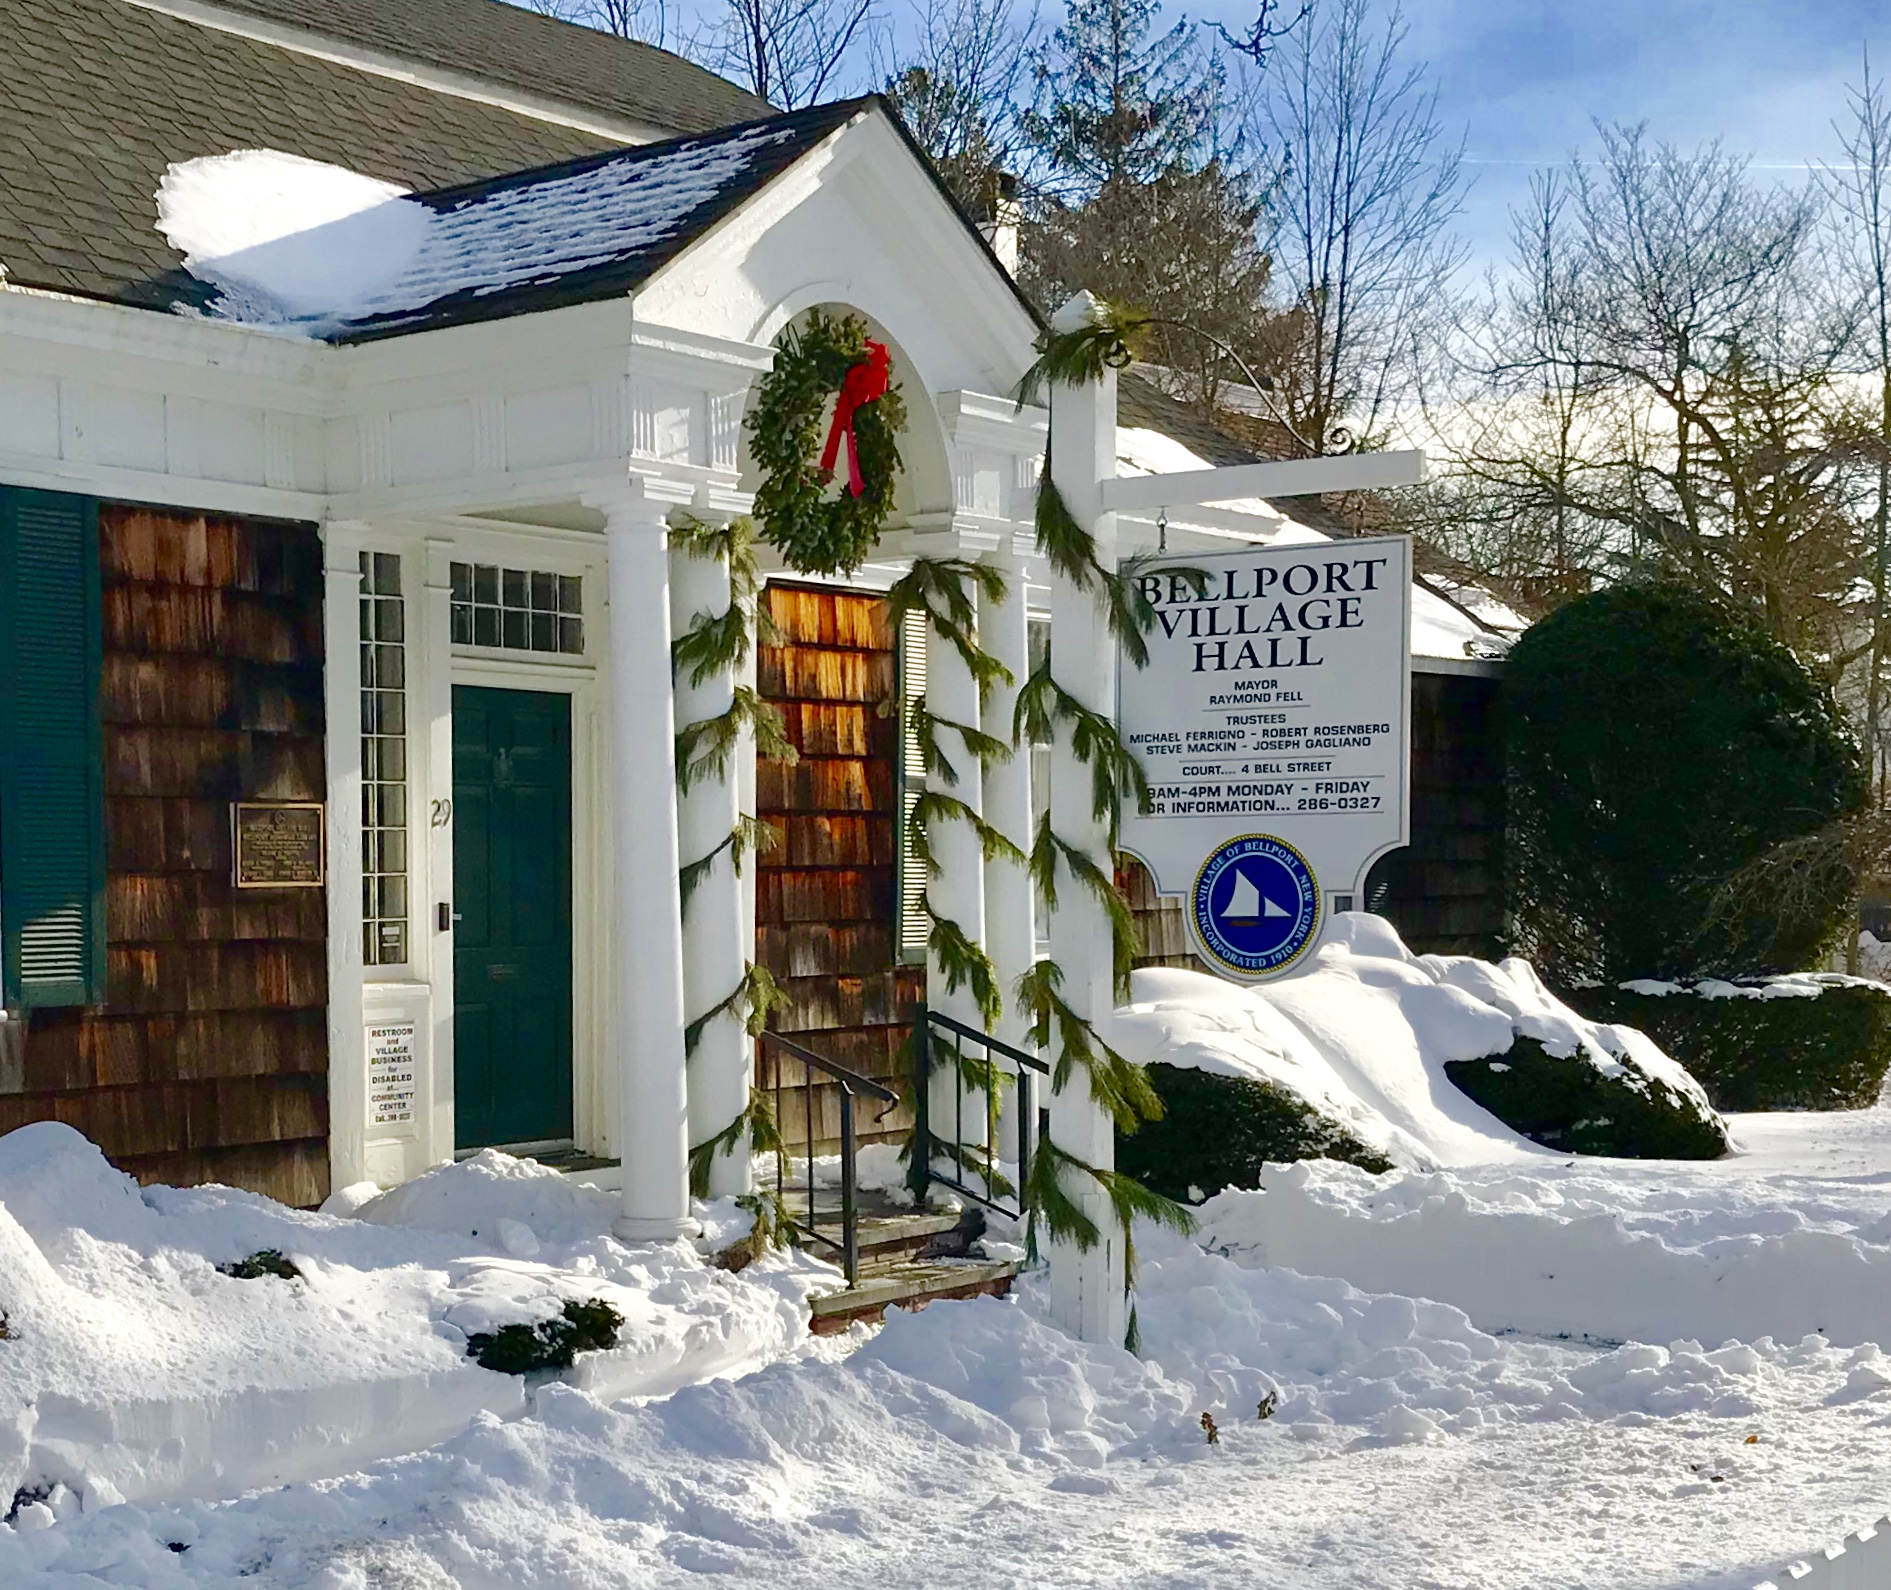 Planning Board Work Session - December 5, 2019 at 7:00 pm in Bellport Village Hall